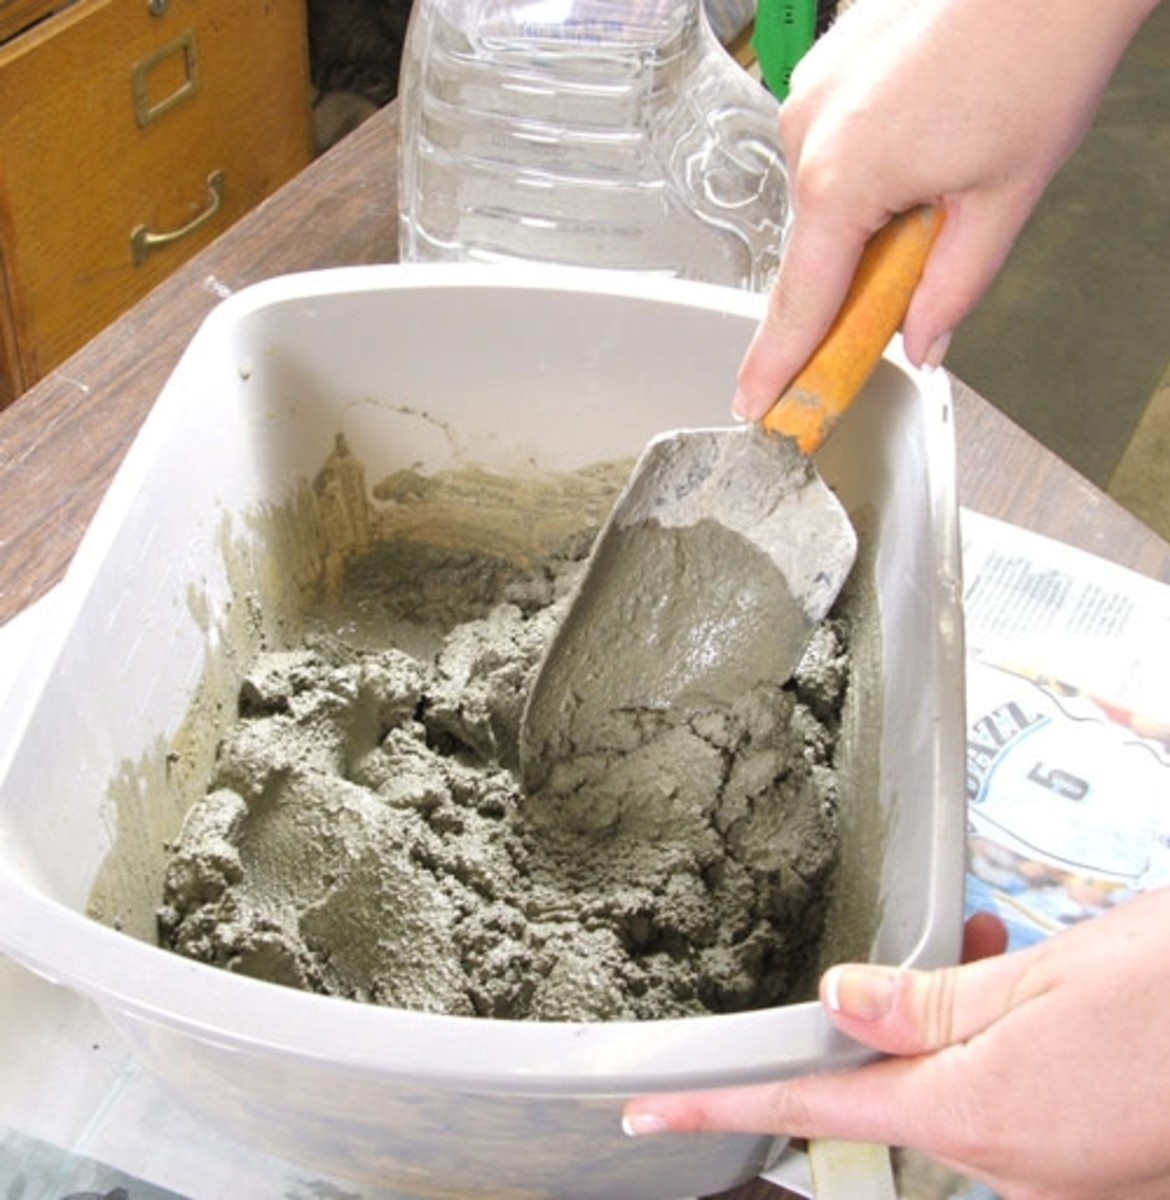 Thoroughly mix your cement mortar with just enough water to make a slurry the thickness of peanut butter.Using your trowel scoop the slurry into your mold then smooth it out using the edge of the trowel until it is evenly spread.